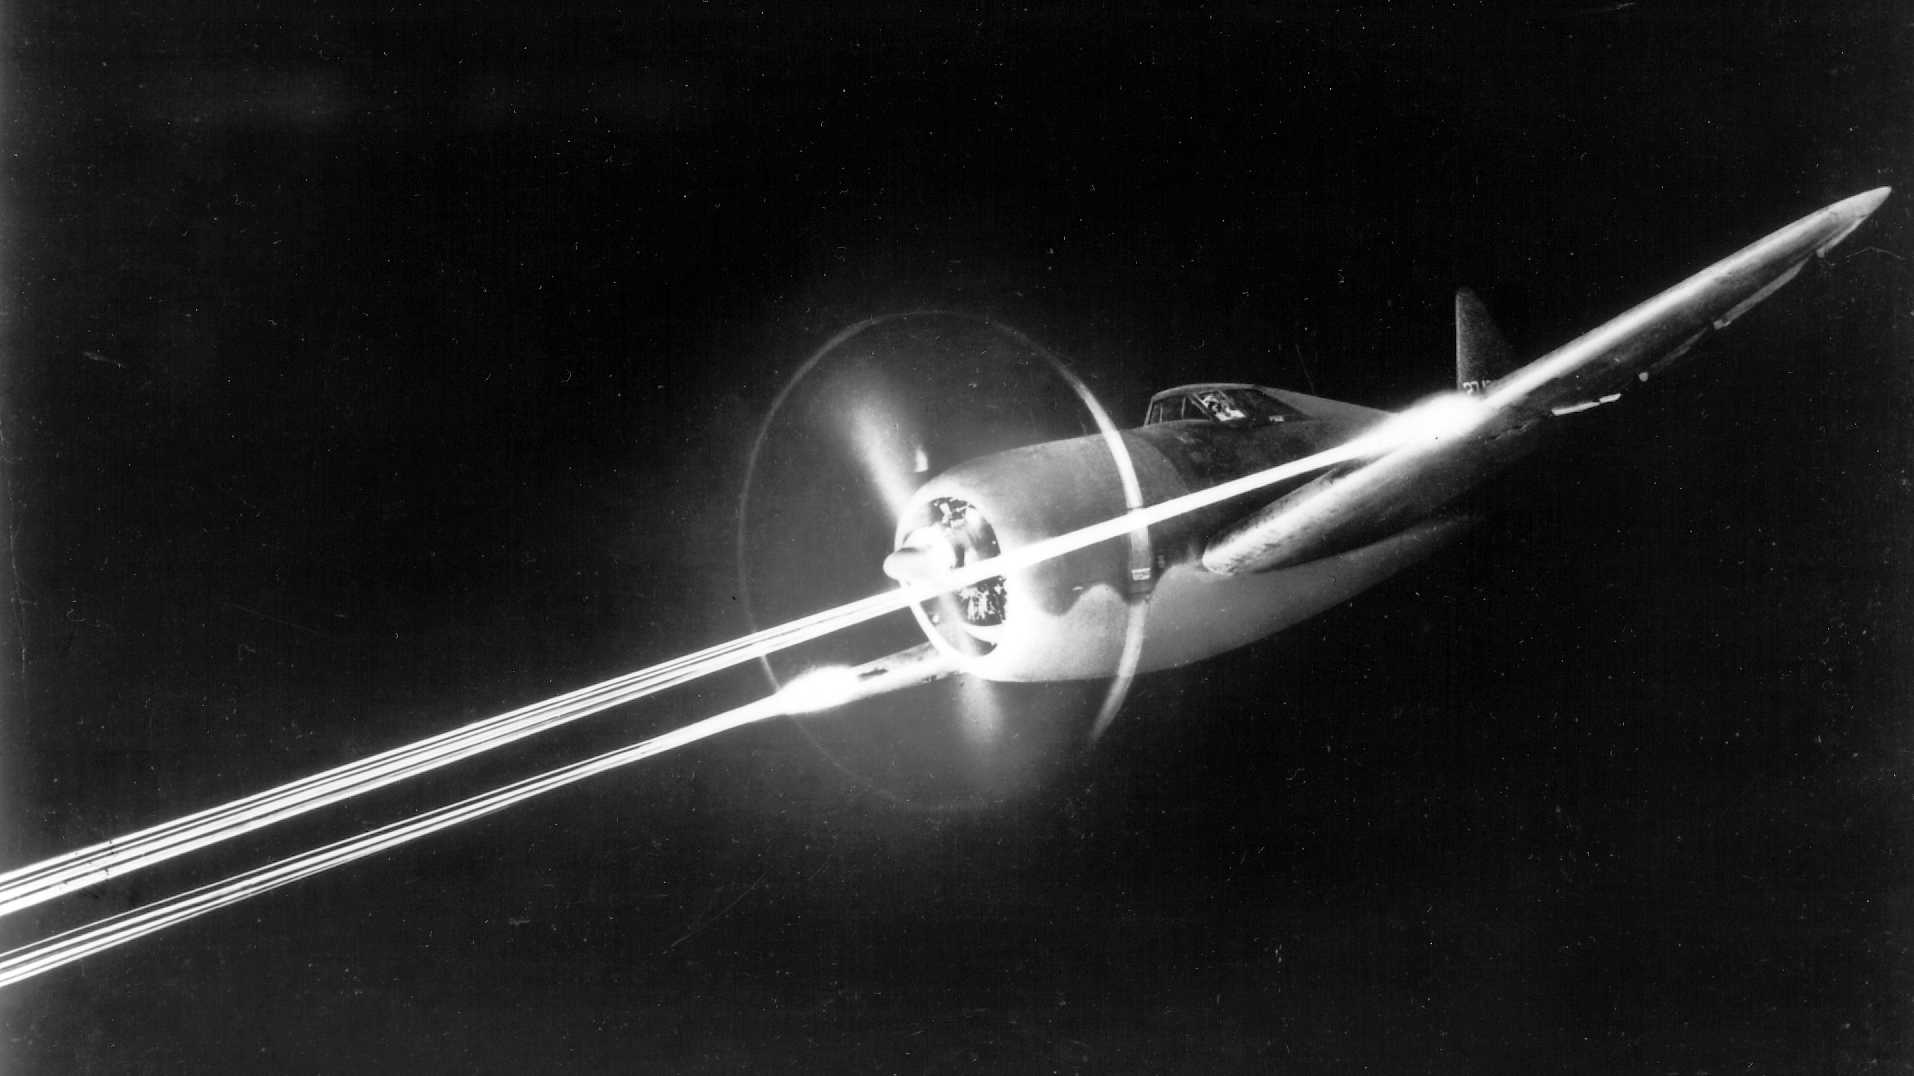 P-47 Thunderbolt during night firing trials